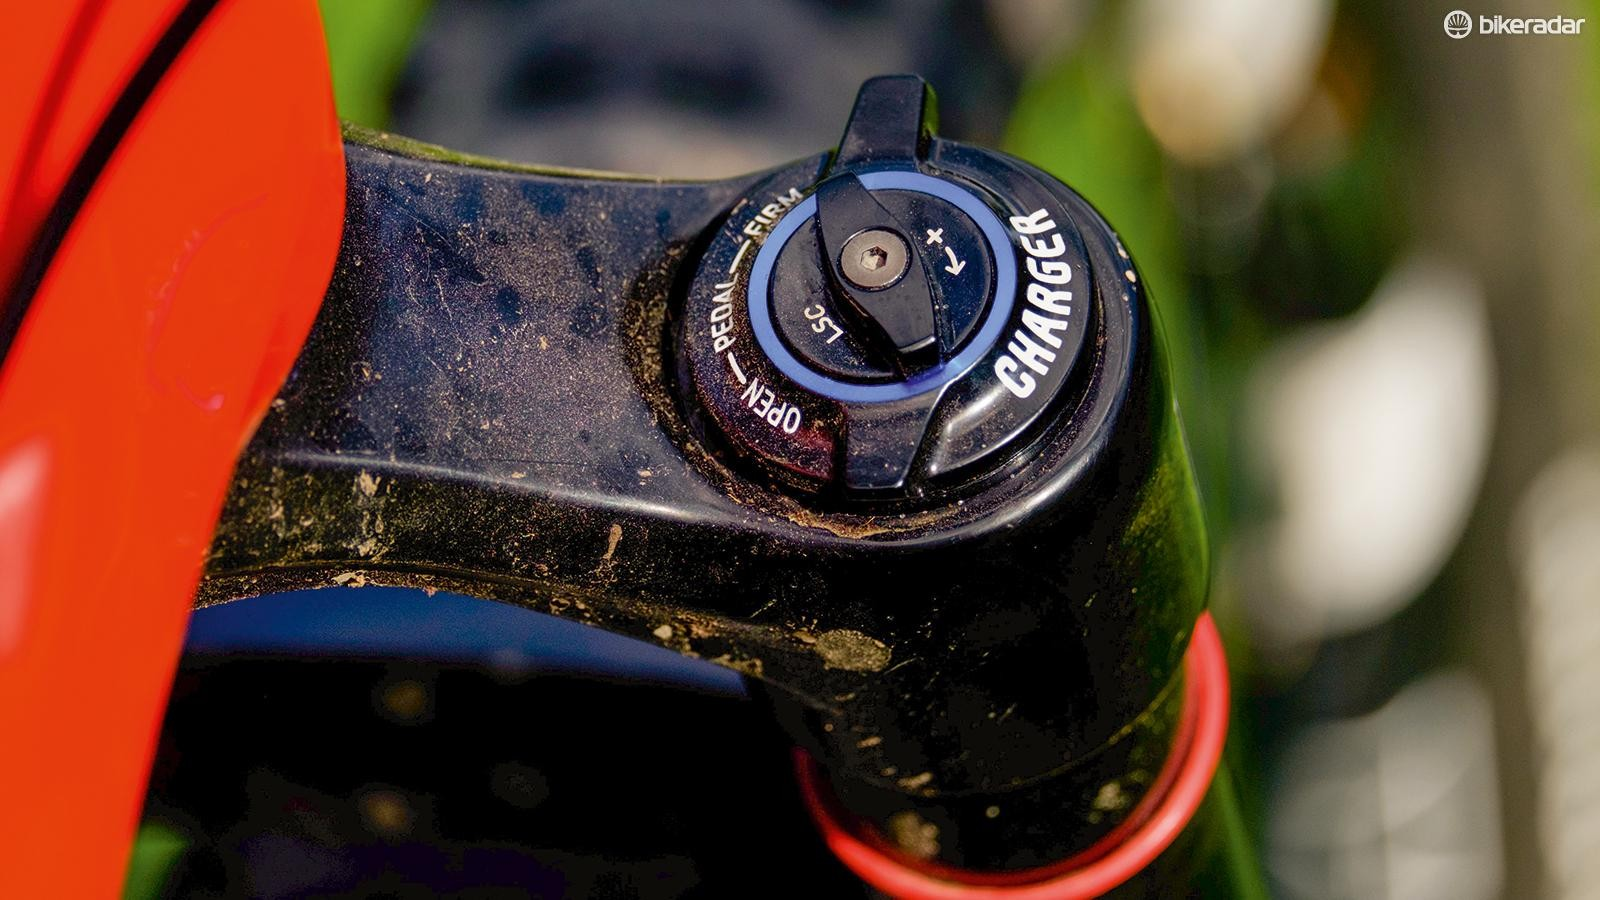 The RockShox Pike RCT3 Solo Air fork's Charger 2